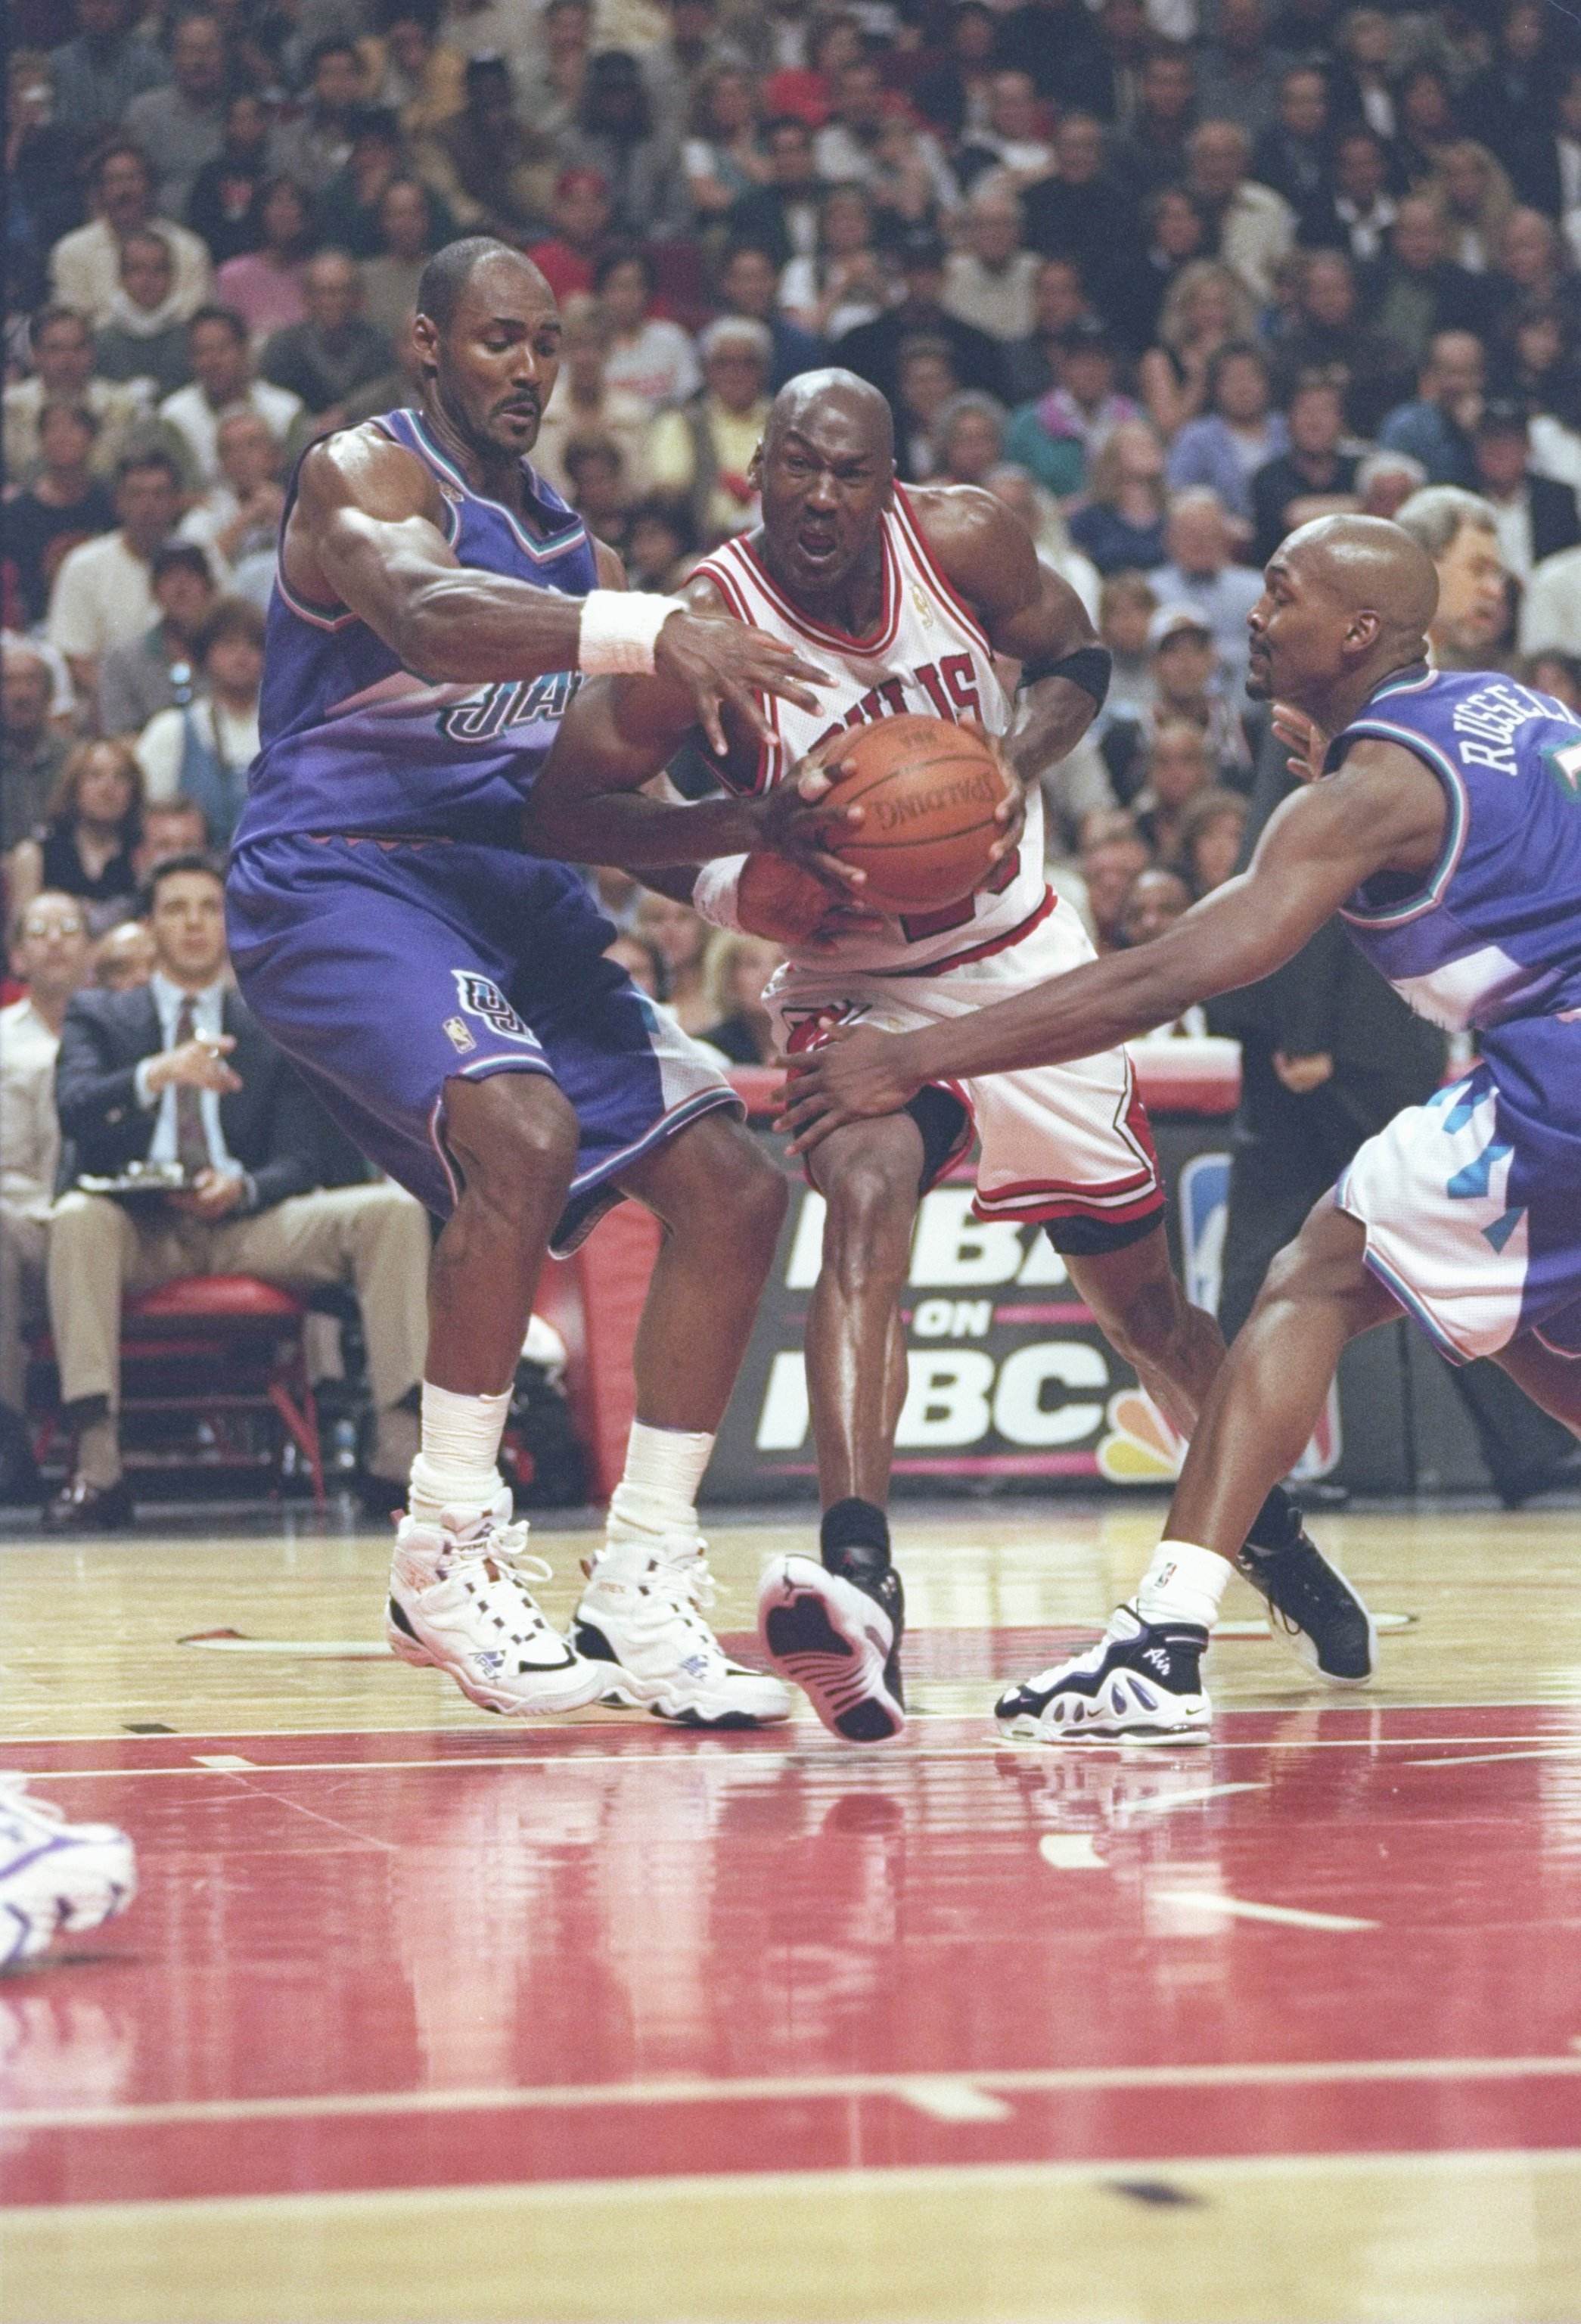 13 Jun 1997: Guard Michael Jordan of the Chicago Bulls drives between forward Karl Malone and forward Bryon Russell of the Utah Jazz during game 6 of the 1997 NBA Finals at the United Center in Chicago, Illinois. The Bulls defeated the Jazz 90-86 to win t